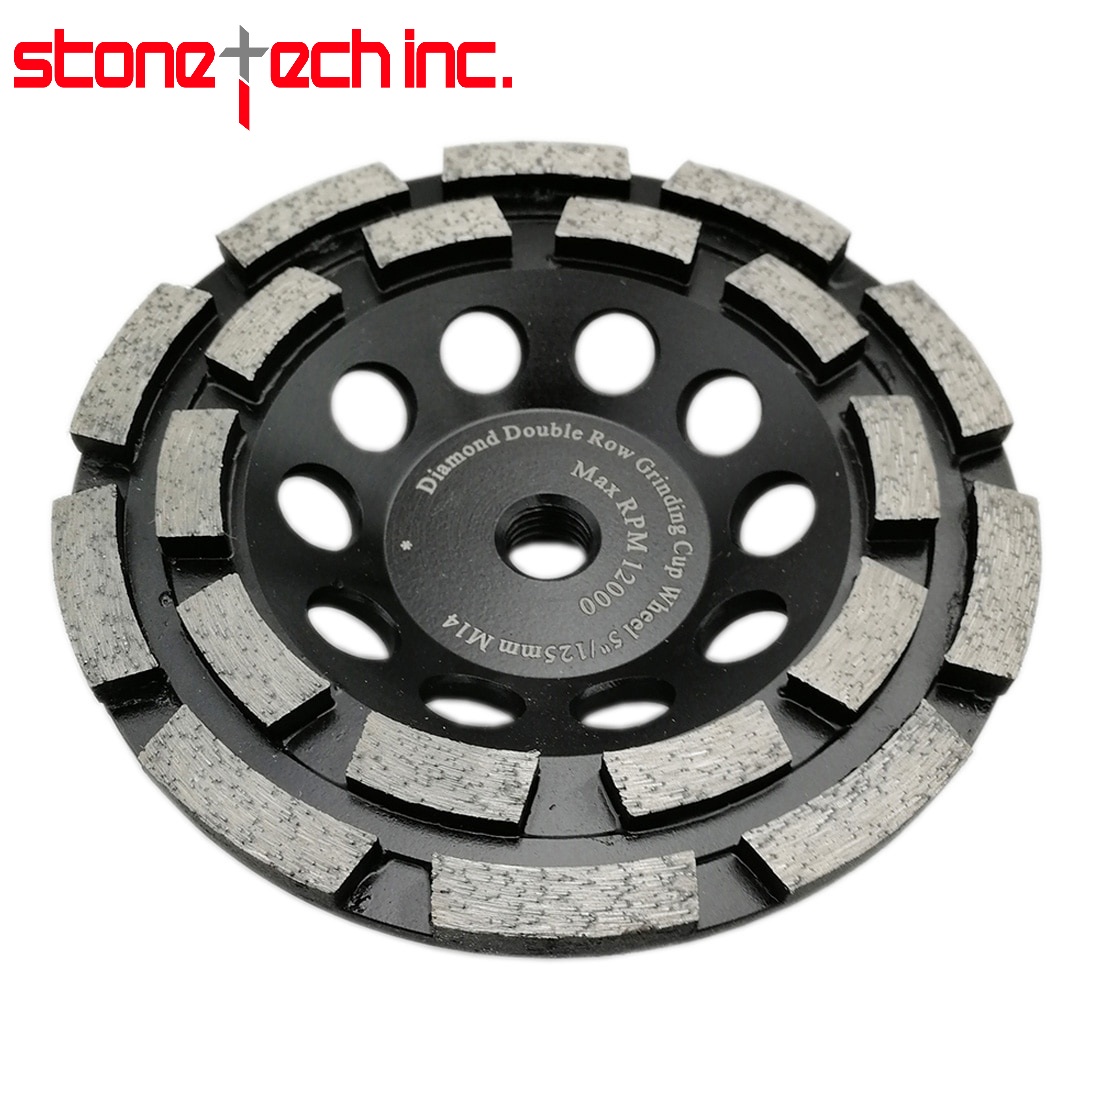 Diamond Double Row Cup Grinding Wheel for Concrete Hard Stone Granite Marble M14 or 5/8-11 thread